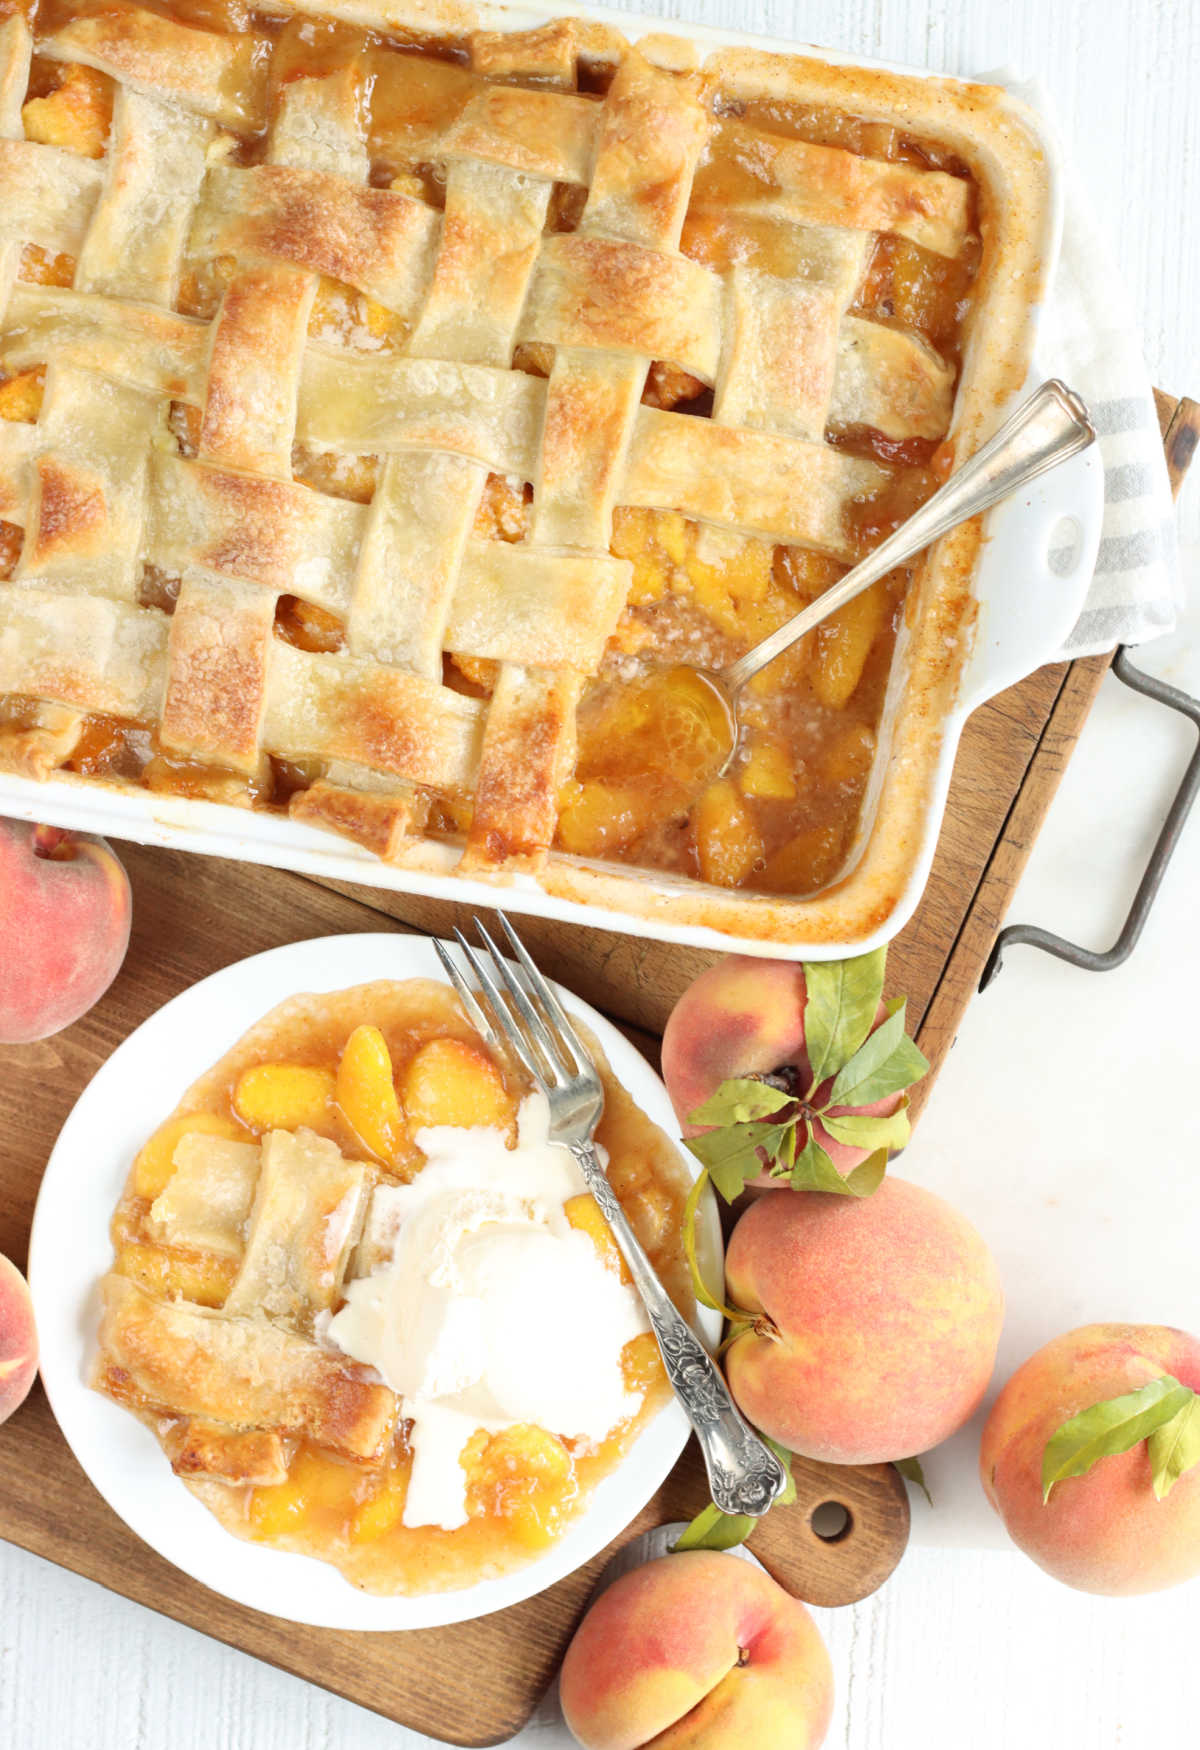 Peach cobbler in white baking dish, white plate with piece of cobbler and fork, fresh peaches around.